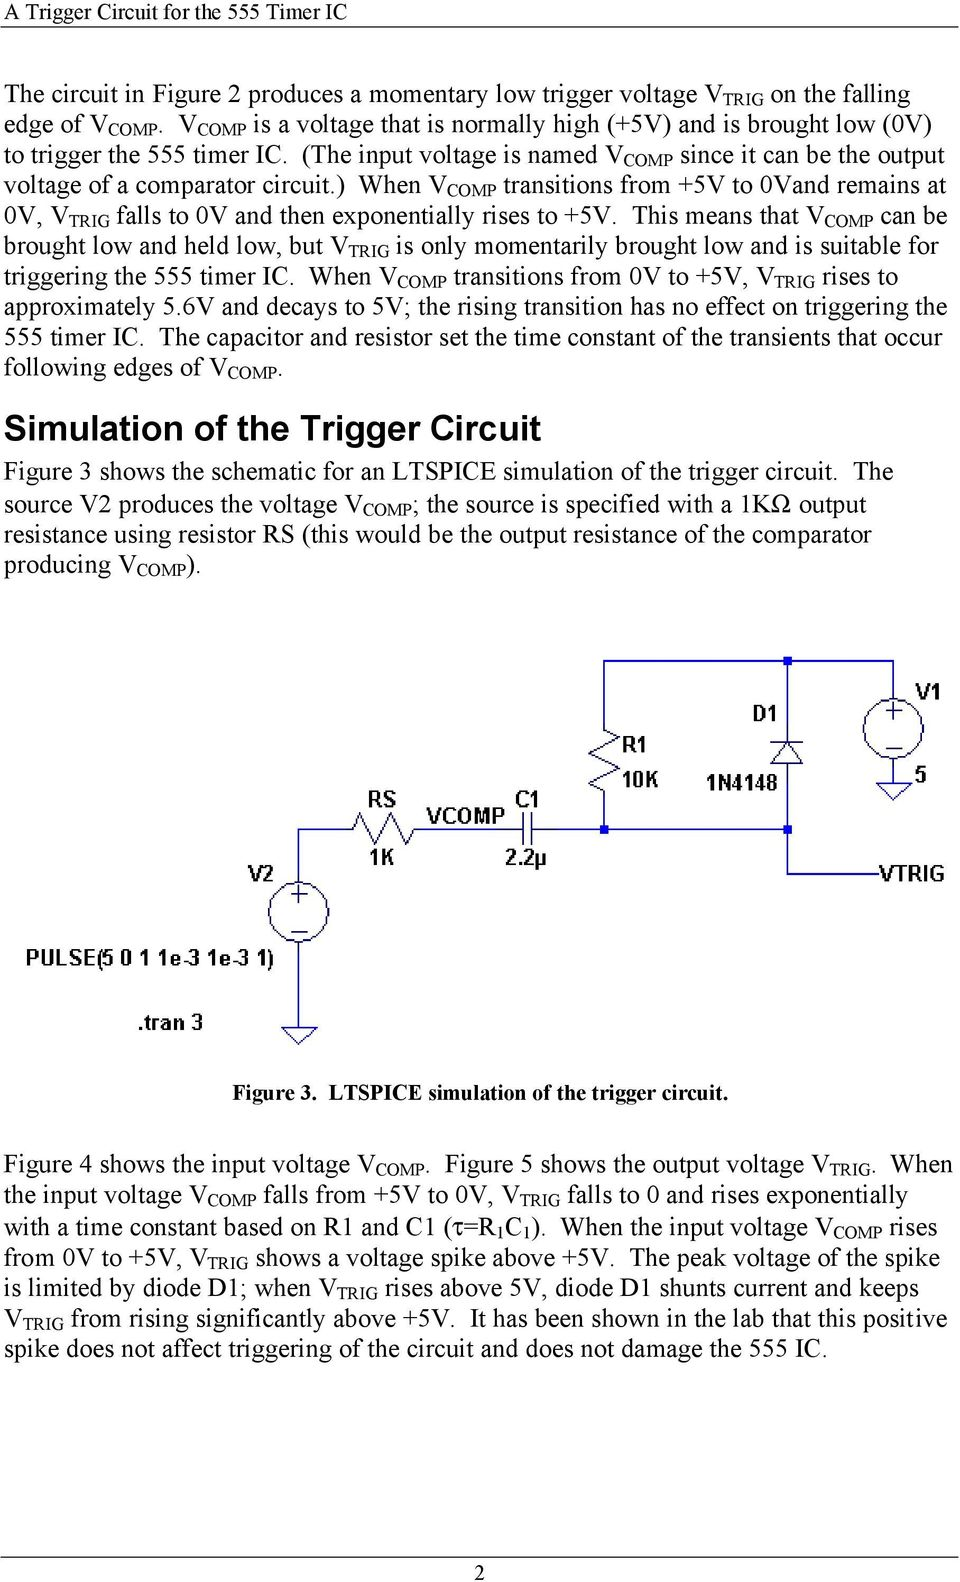 A Trigger Circuit For The 555 Timer Ic Scope Pdf Internal Structure Working Pin Diagram And Description When V Comp Transitions From 5v To 0vand Remains At 0v Trig